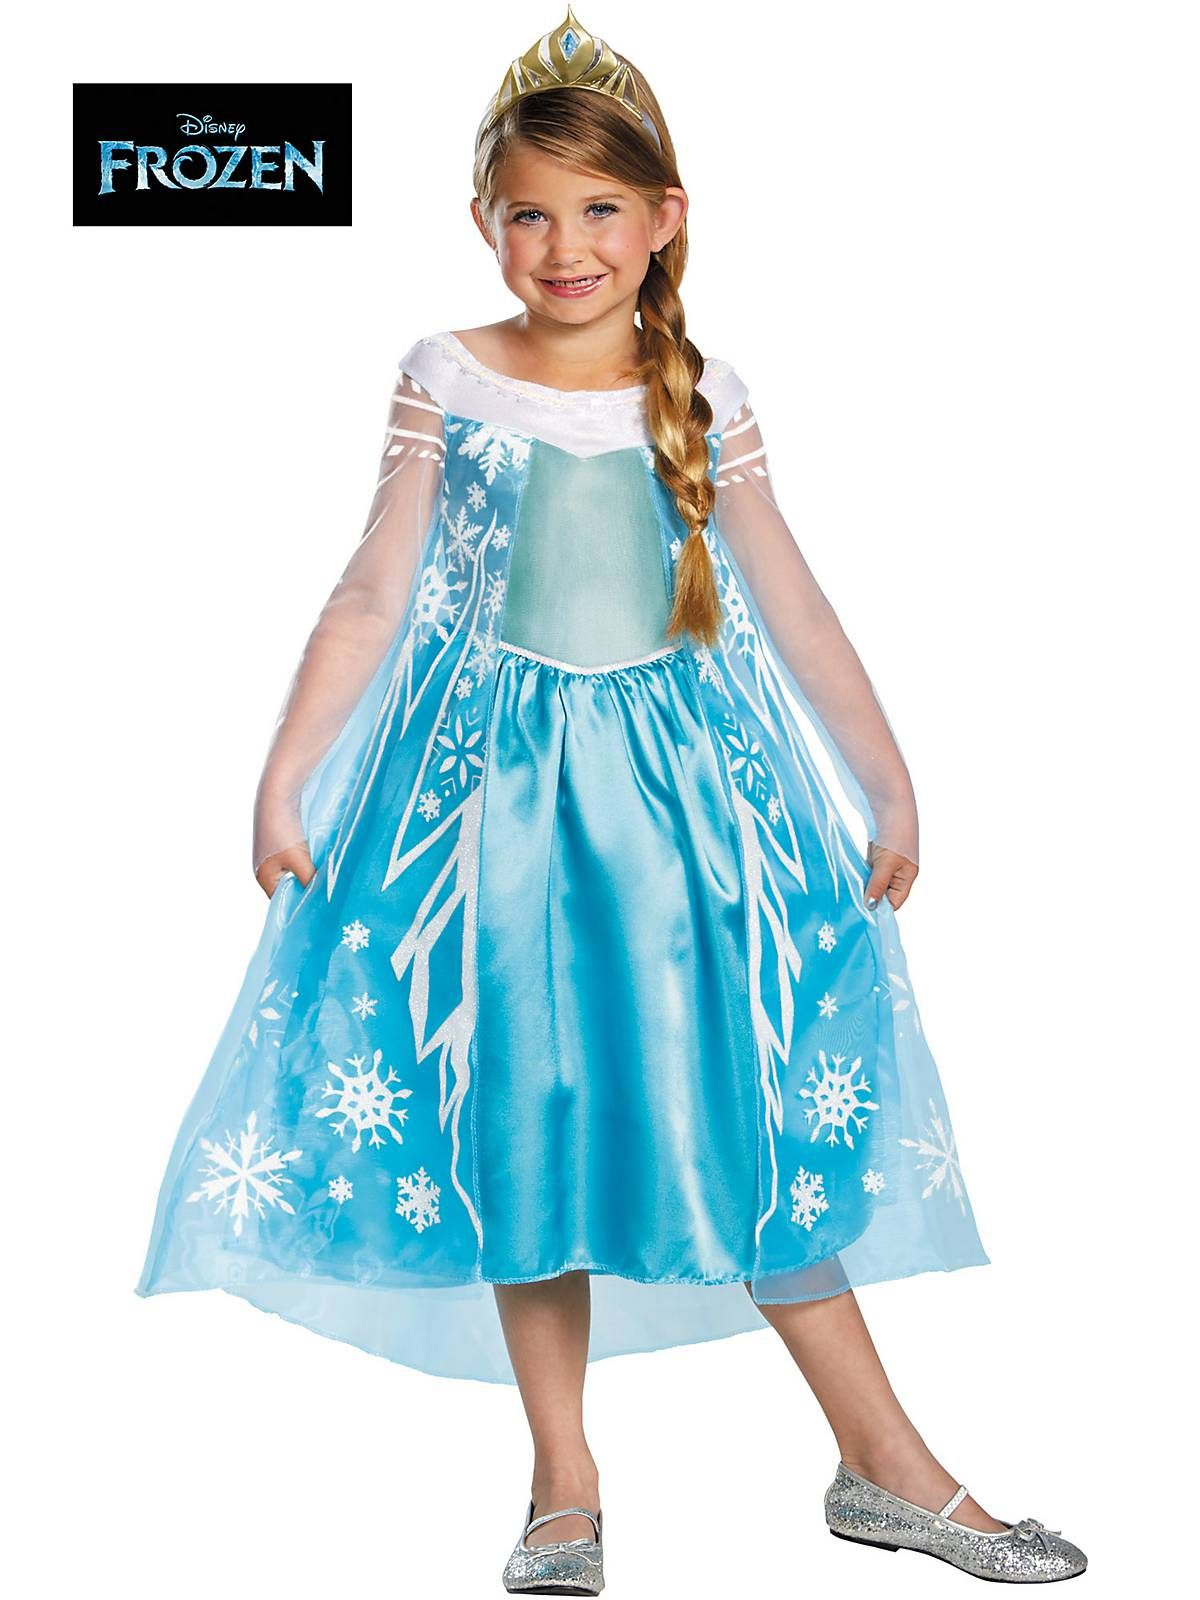 12605a6a Girl's Frozen Elsa Deluxe Costume! See more Disney princess costumes for  birthday parties & more at BirthdayinaBox.com!